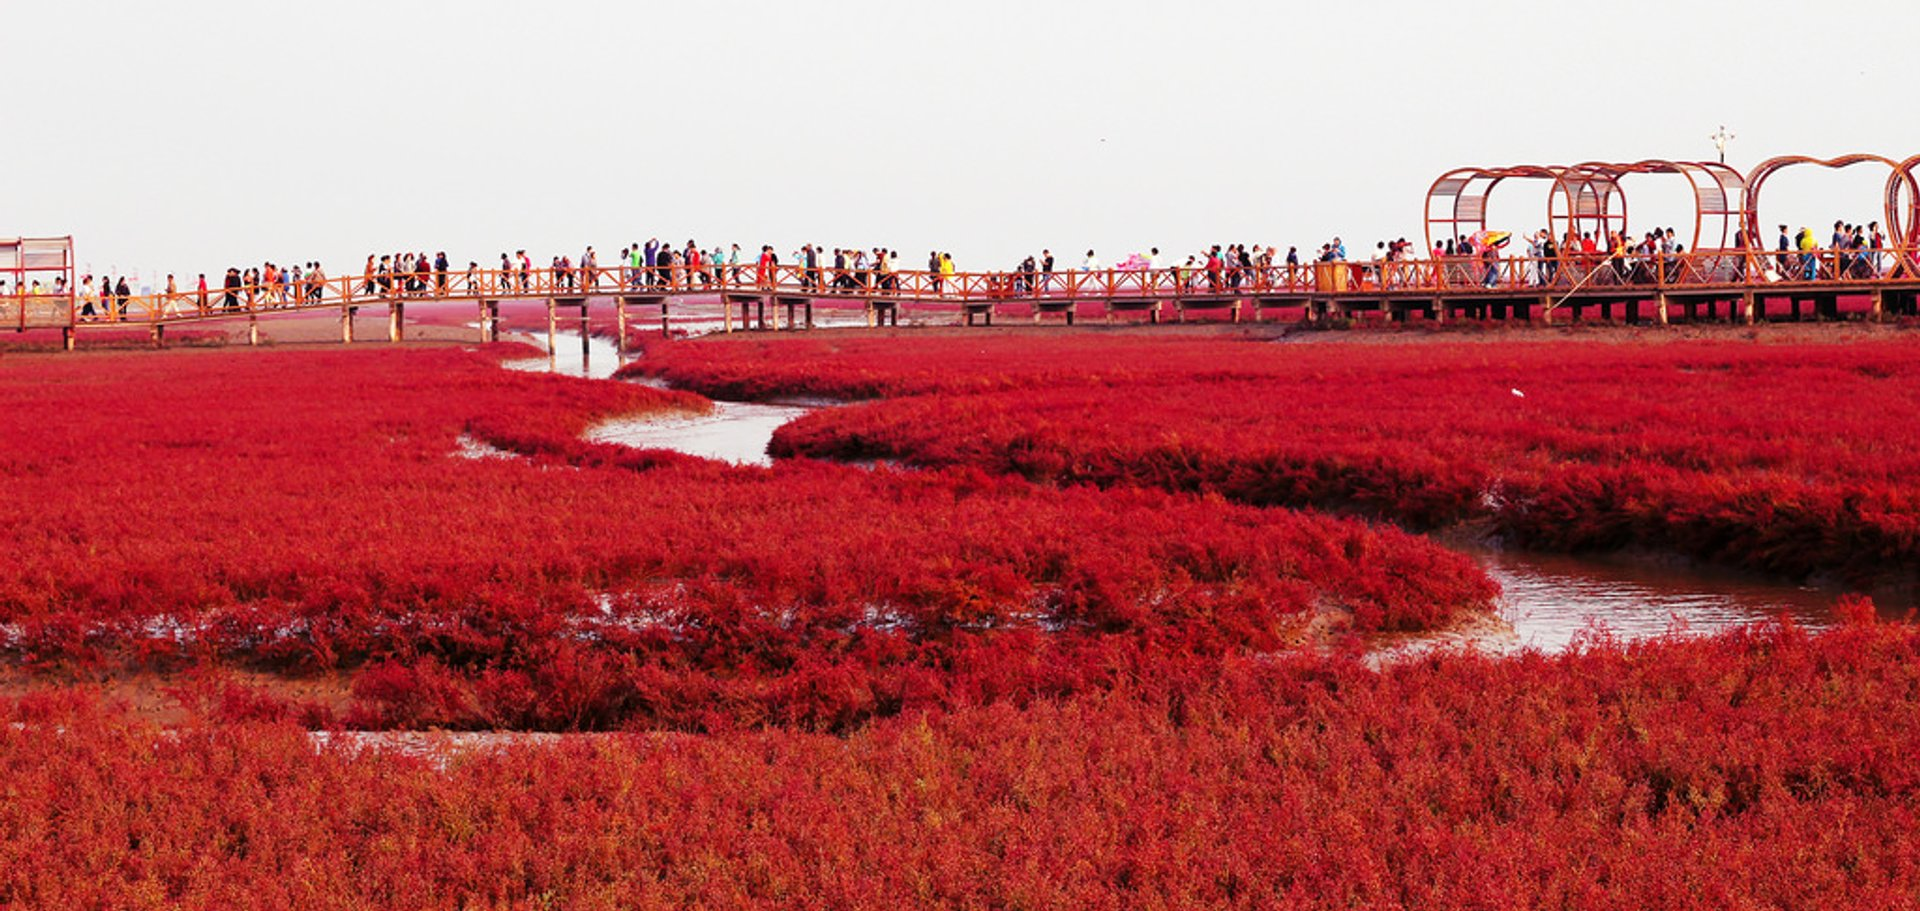 Best Time to See Panjin Red Beach in China 2020 - When & Where to See